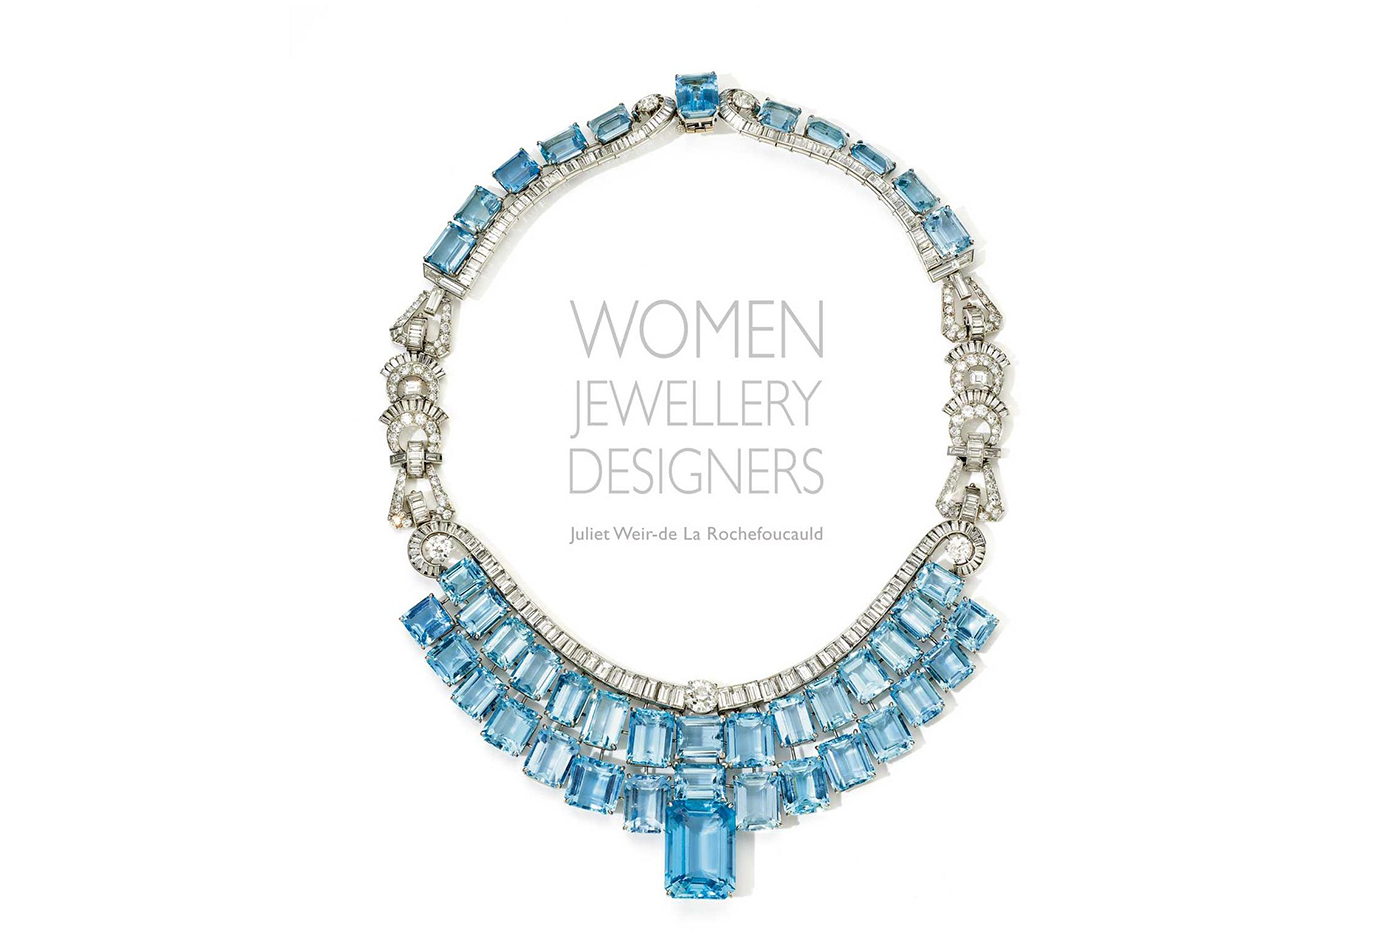 Cover of 'Women Jewellery Designers' by Juliet Weir-de La Rochefoucauld featuring aquamarine and diamond necklace by Olga Tritt